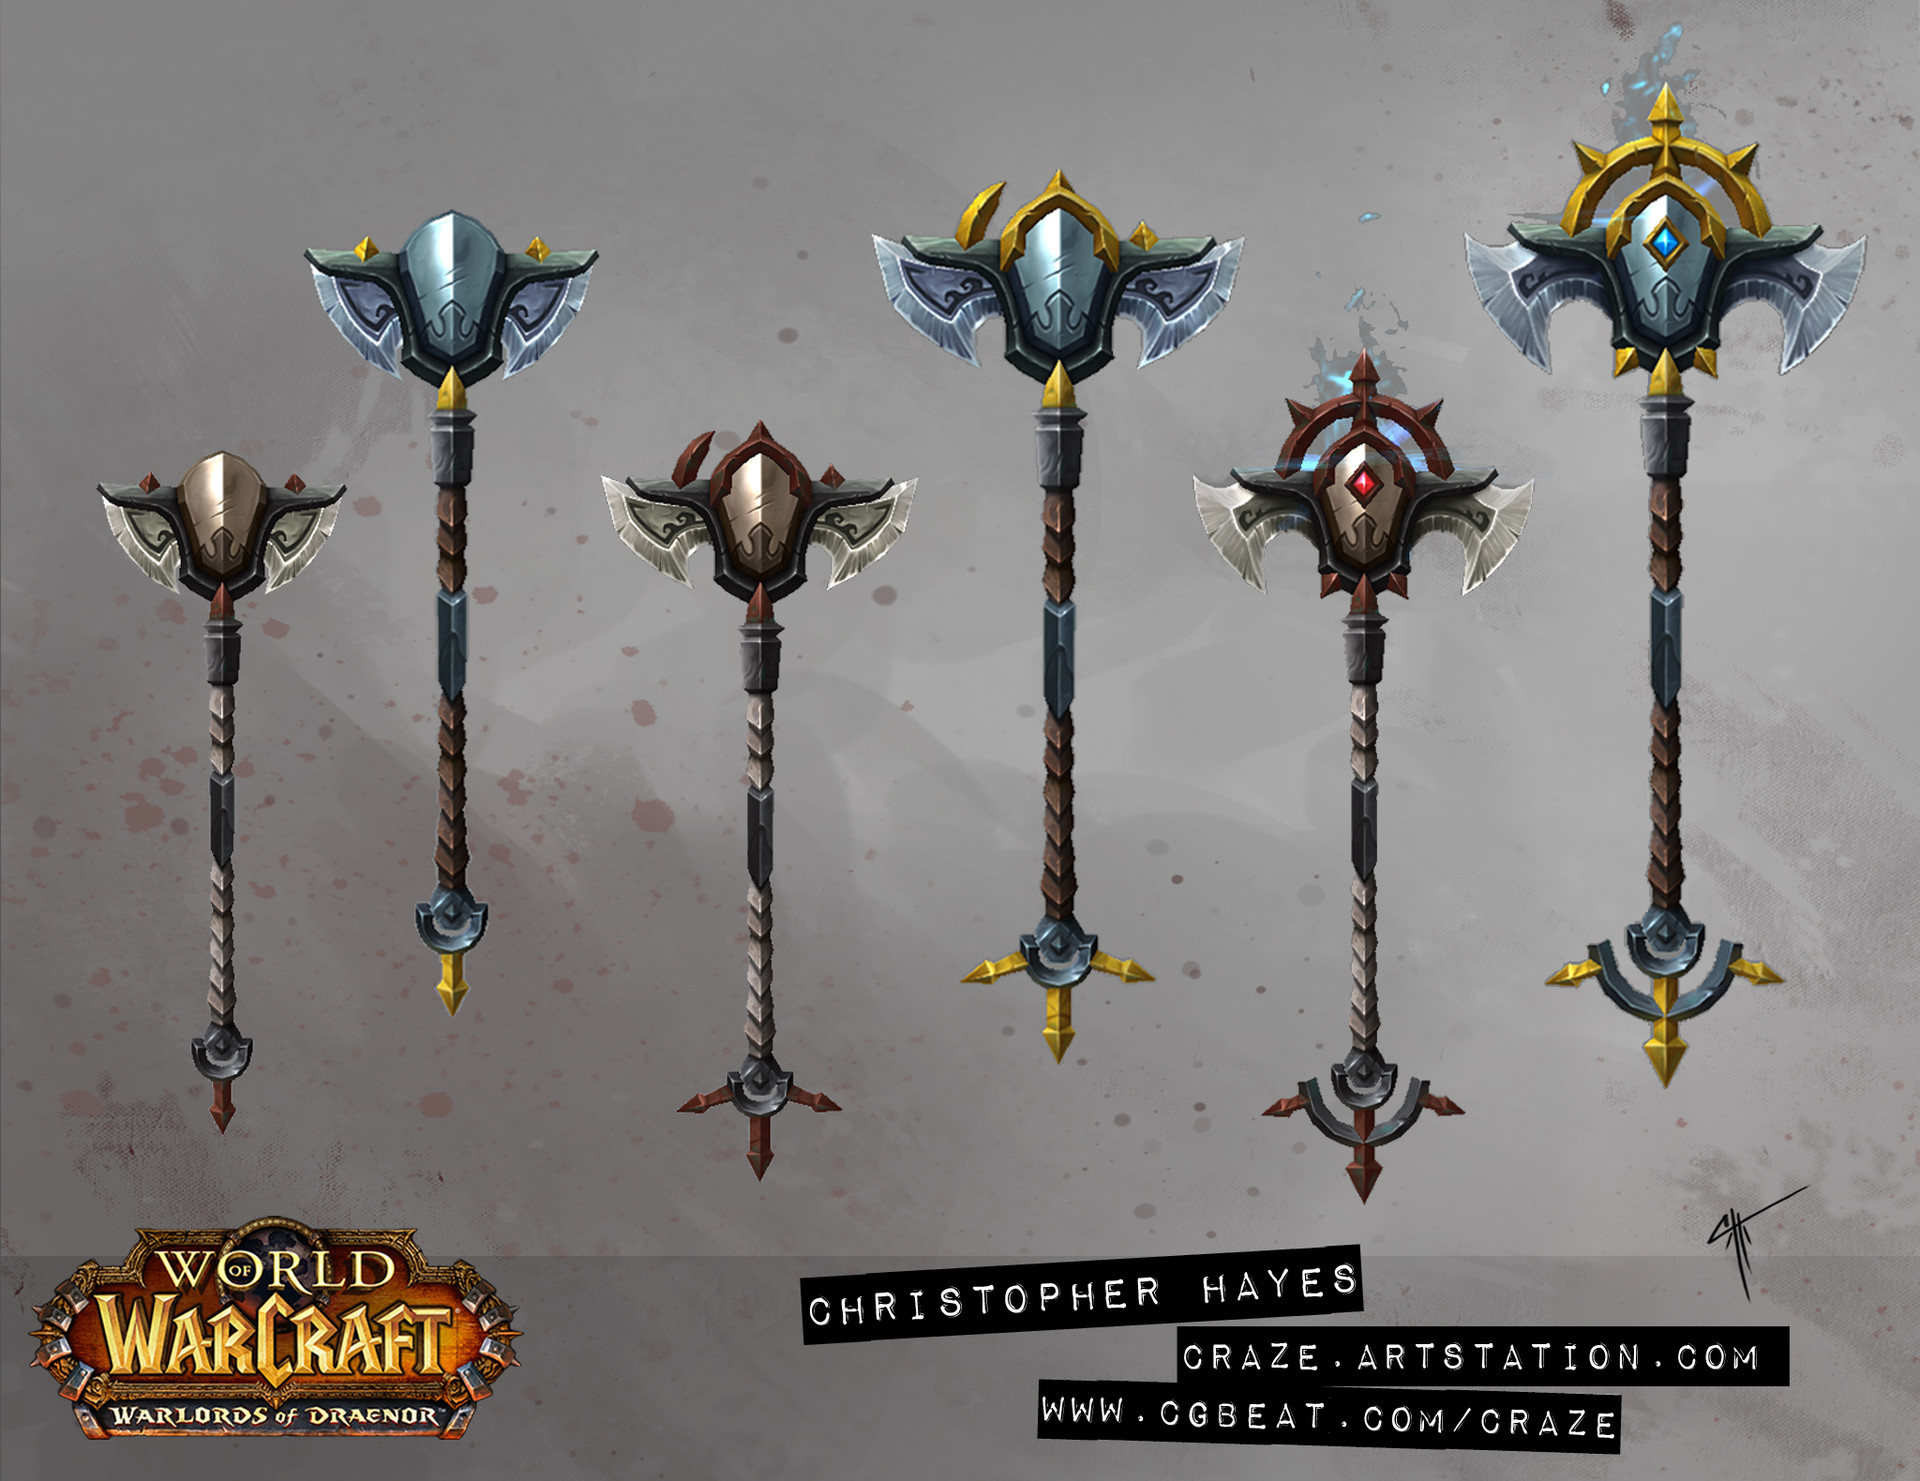 Christopher hayes crafted staff